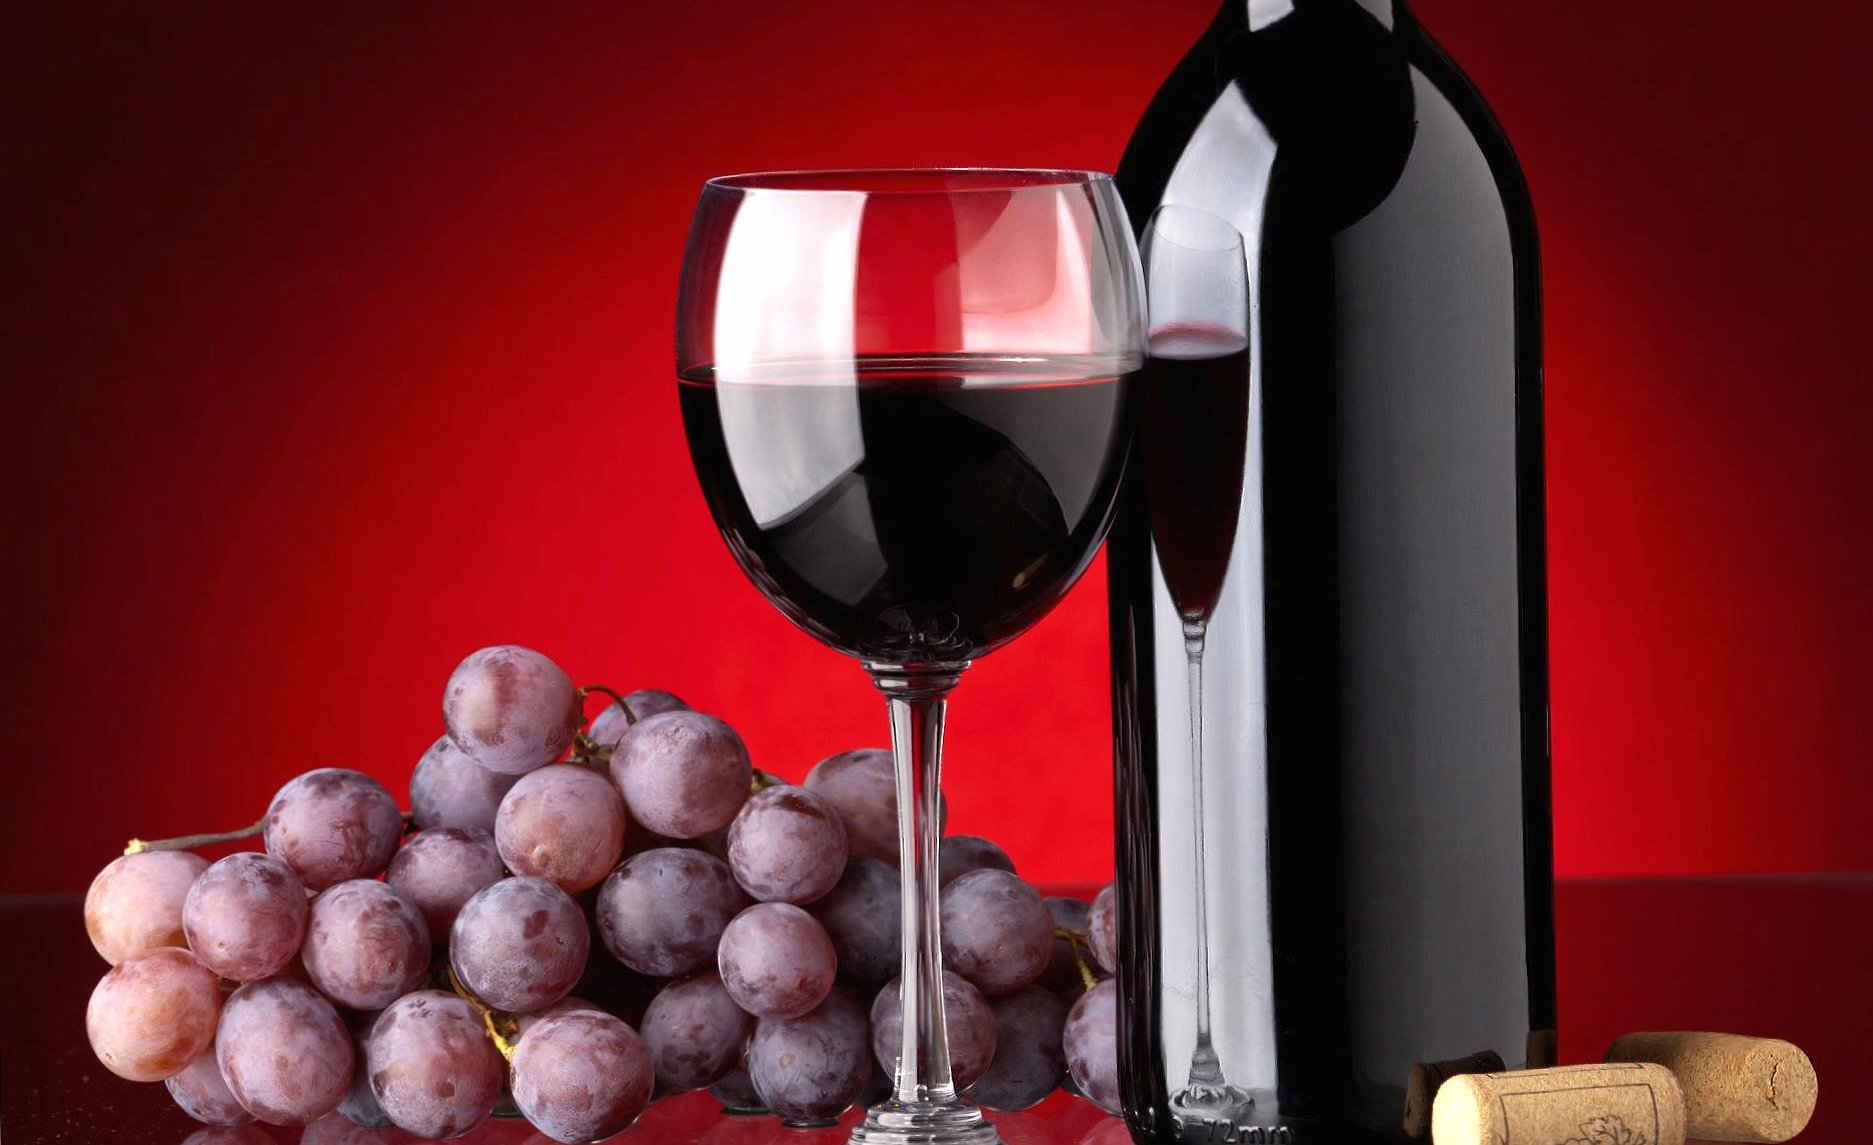 Wine red glass and bottle wallpapers HD quality